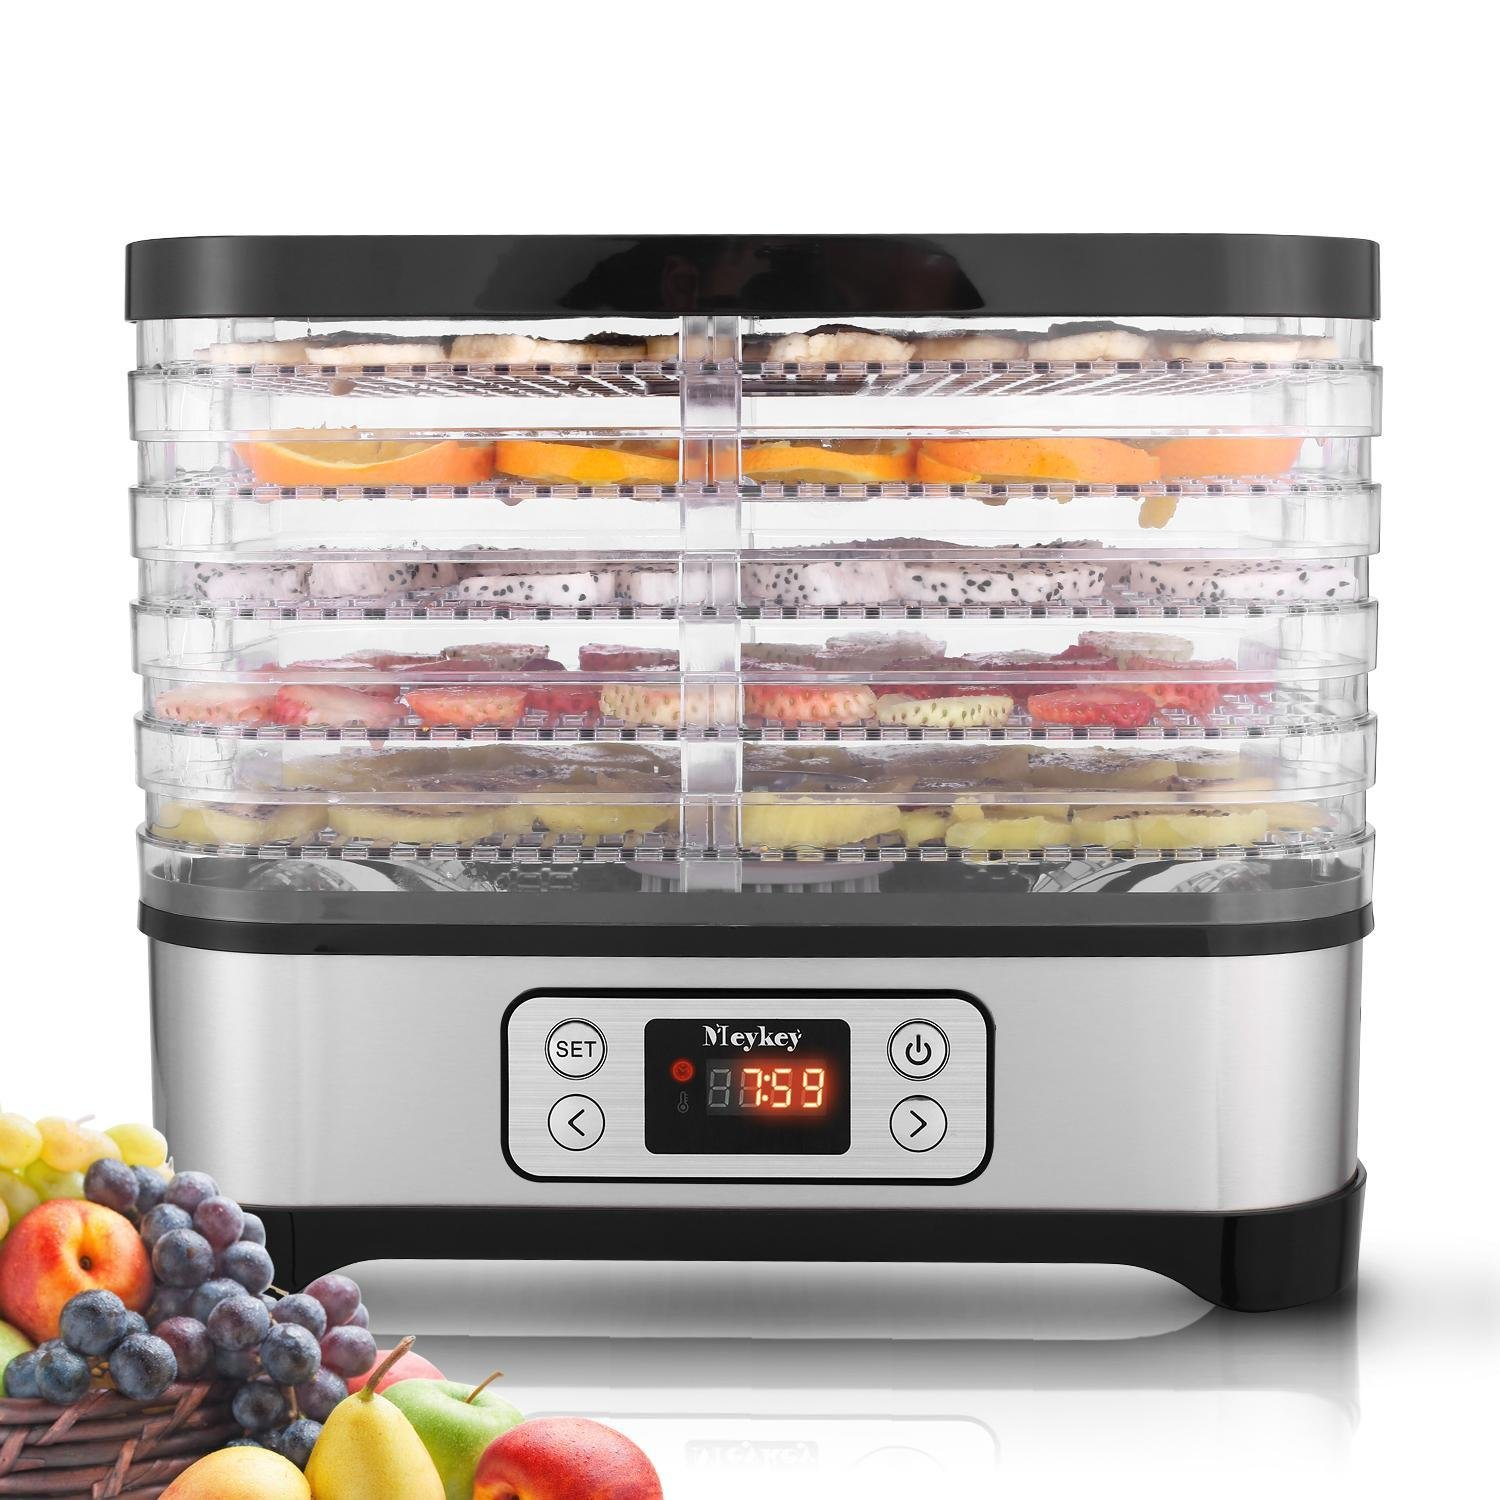 Hauture Food Dehydrator Machine, Digital Timer and Temperature Control, 5 Trays, for Jerky/Meat/Beef/Fruit/Vegetable, BPA Free